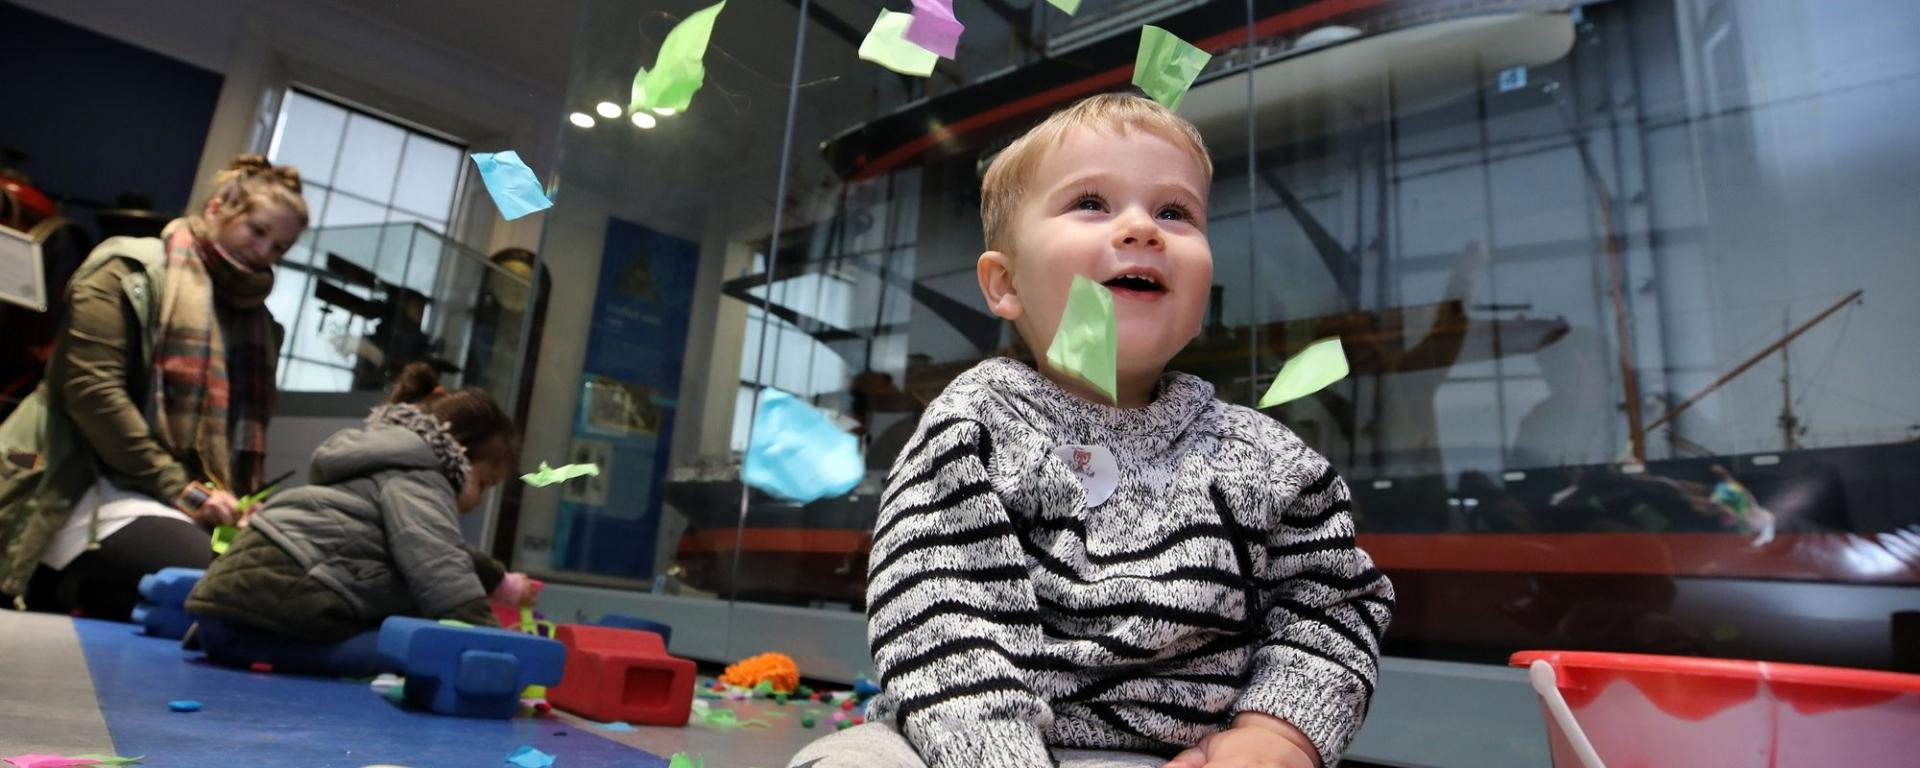 Toddler Playing With Tissue Confetti